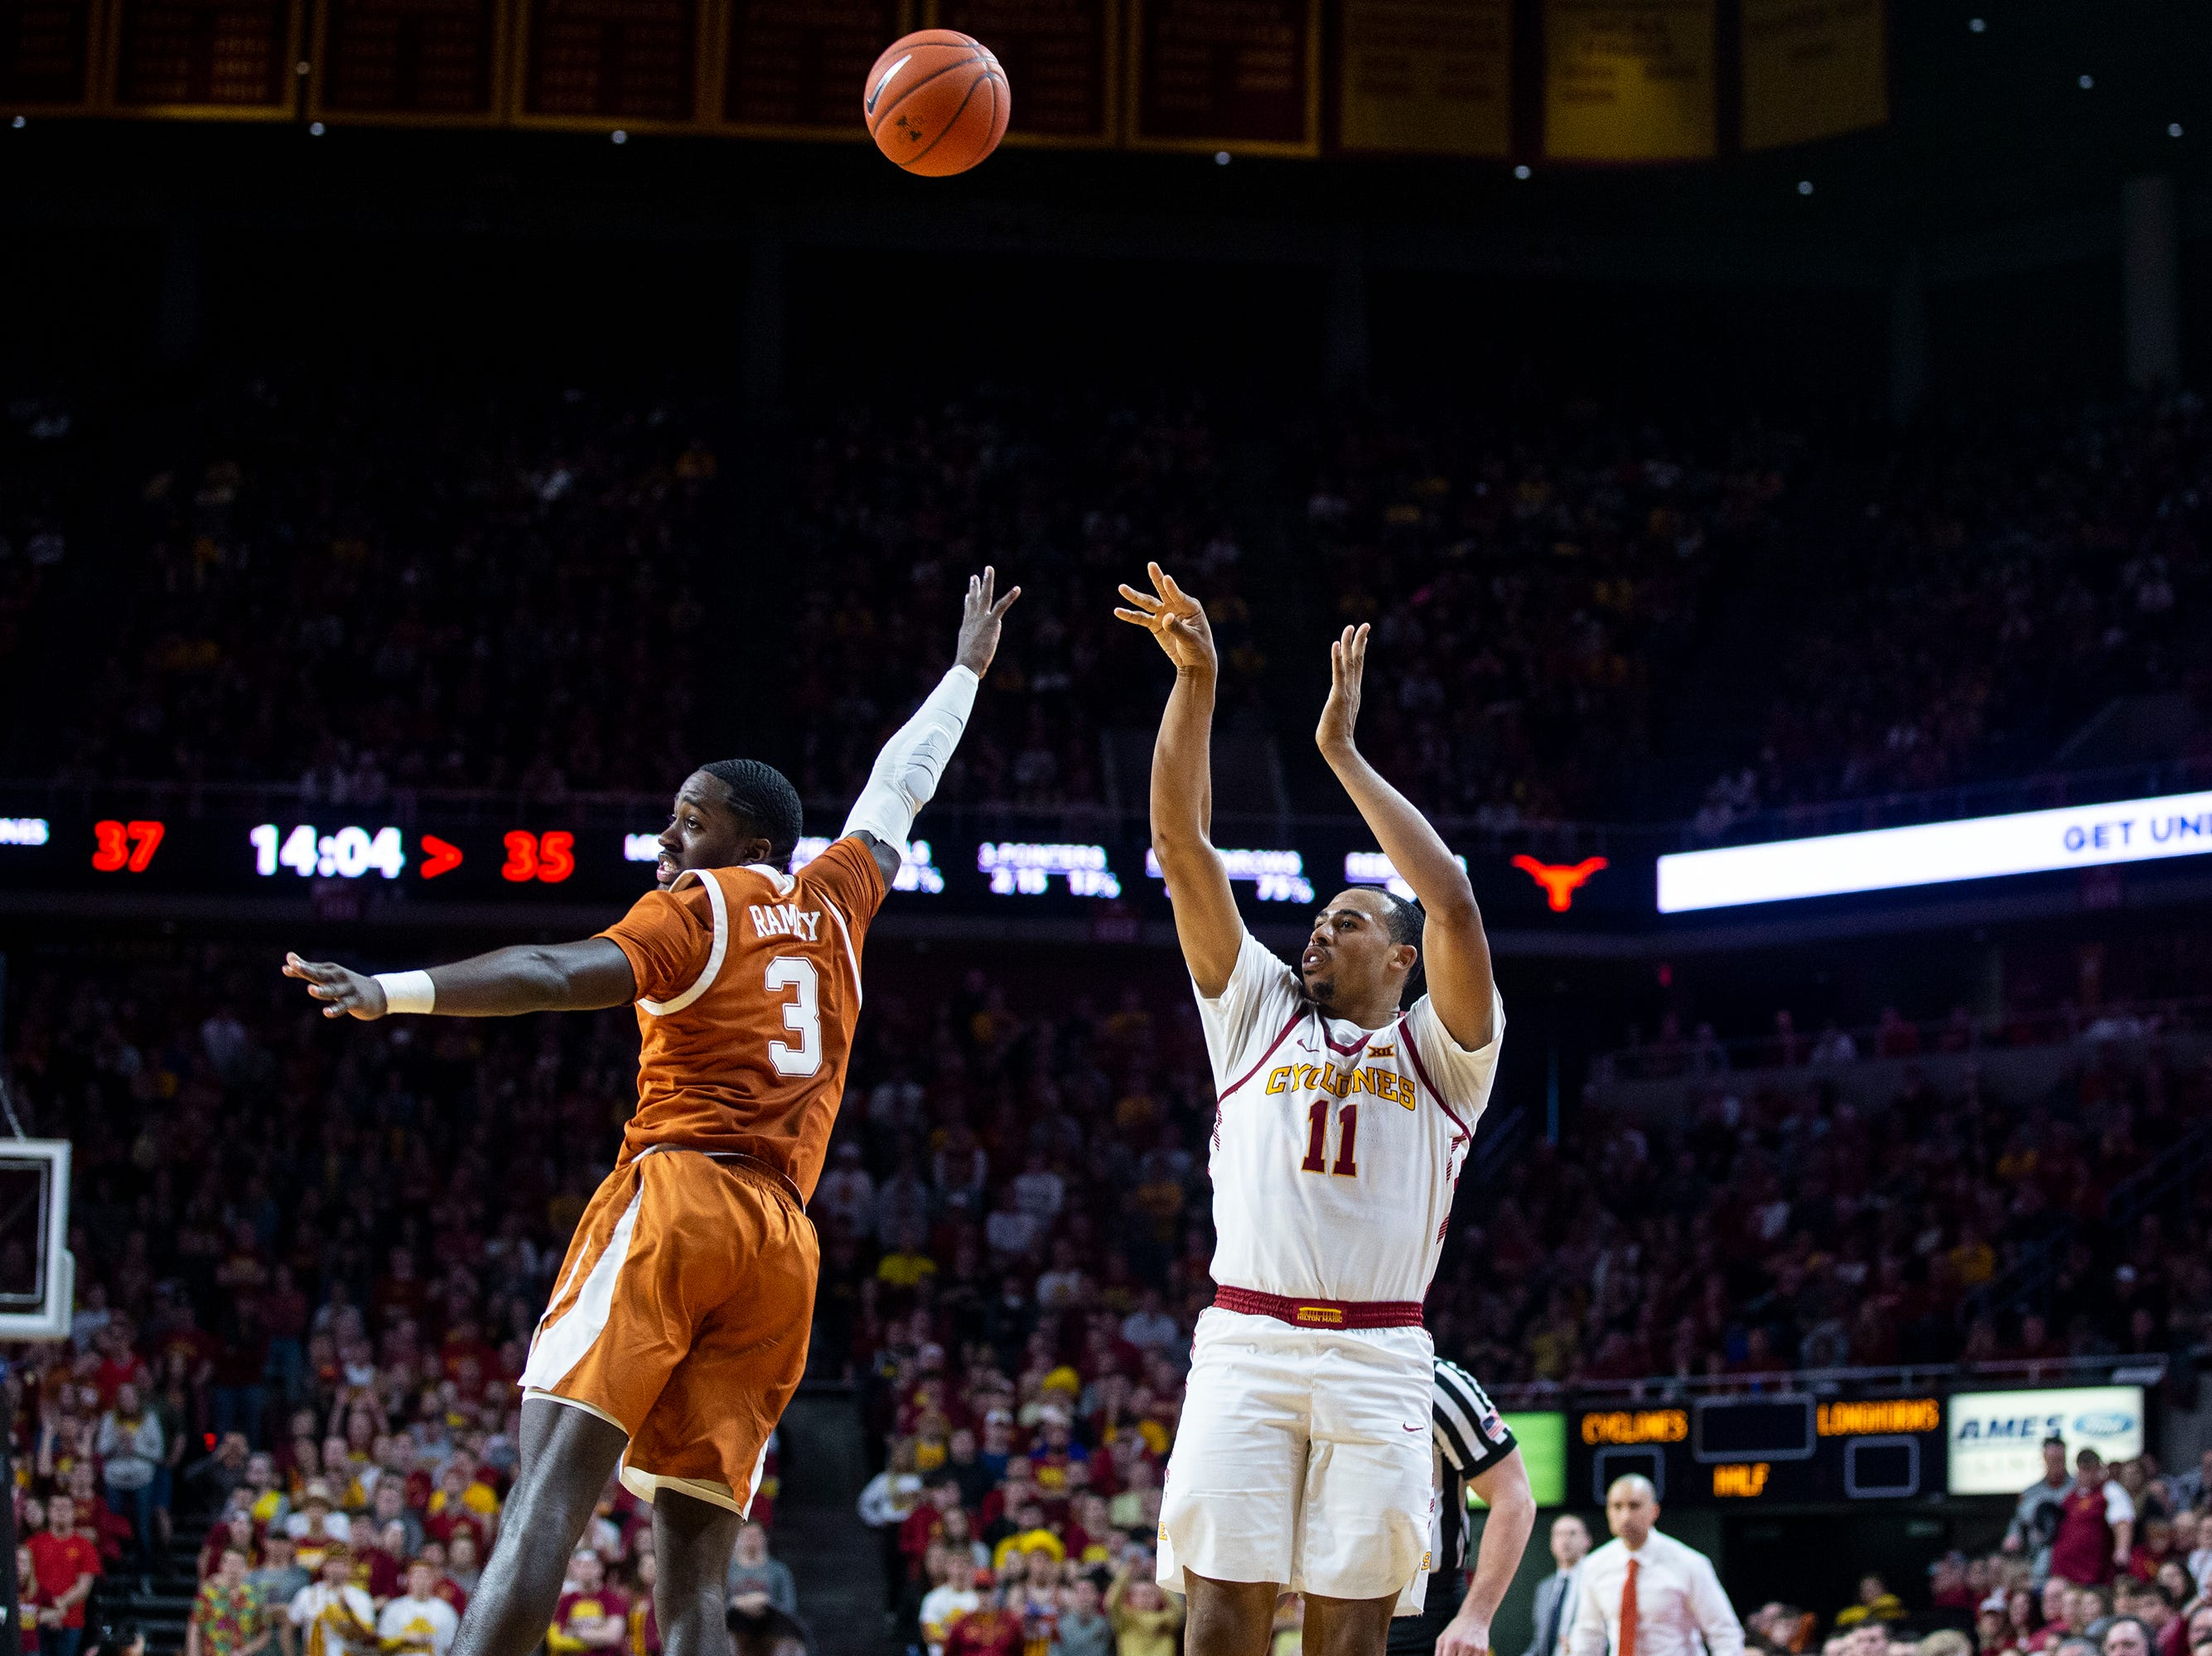 Iowa State's Talen Horton-Tucker shoots the ball during the Iowa State men's basketball game against Texas on Saturday, Feb. 2, 2019, in Hilton Coliseum. The Cyclones defeated the Longhorns 65-60.